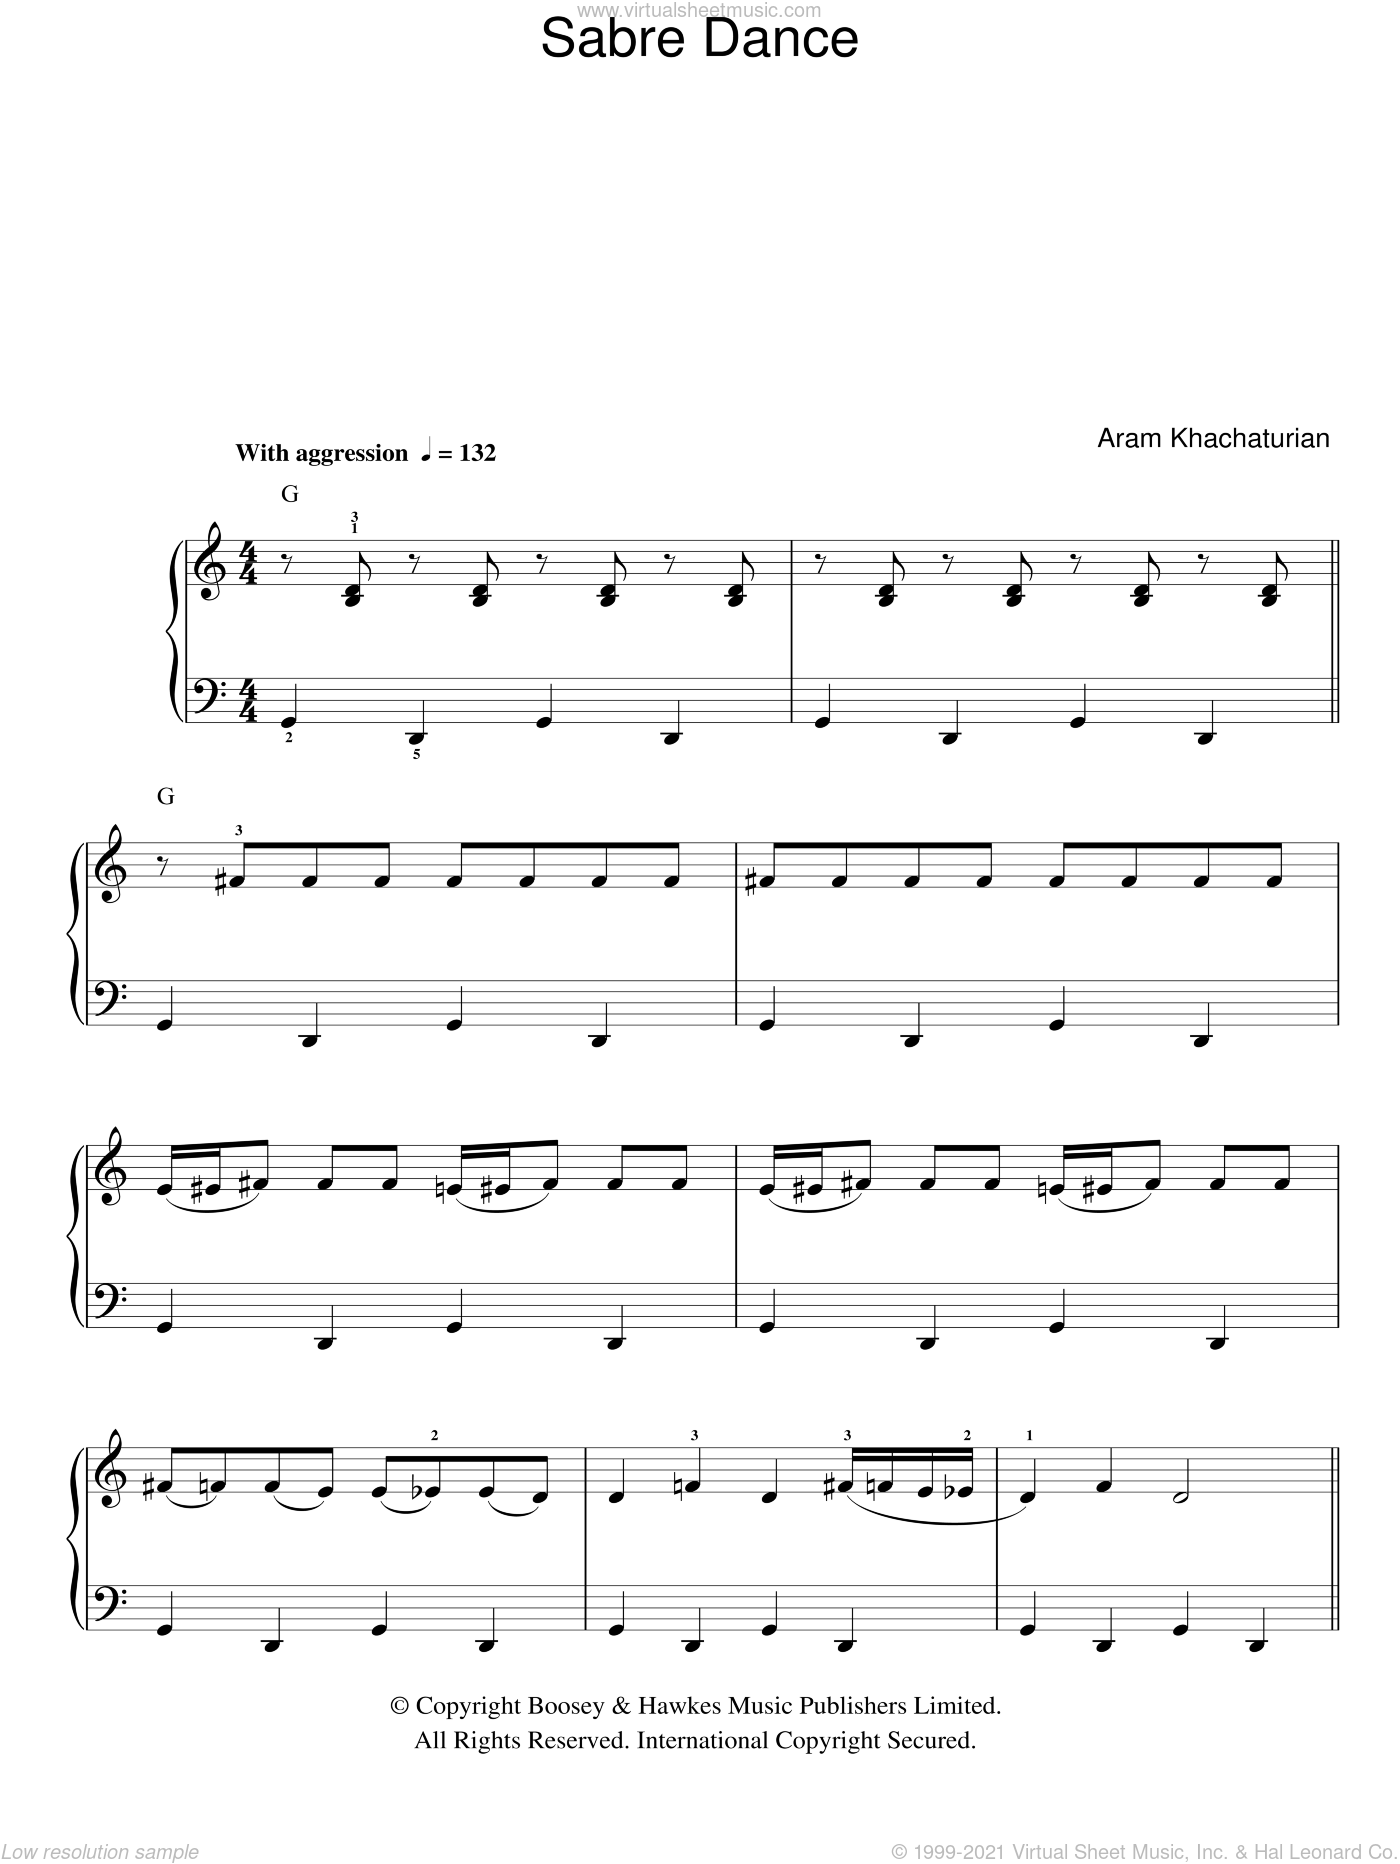 Sabre Dance, (easy) sheet music for piano solo by Aram Khachaturian, classical score, easy skill level